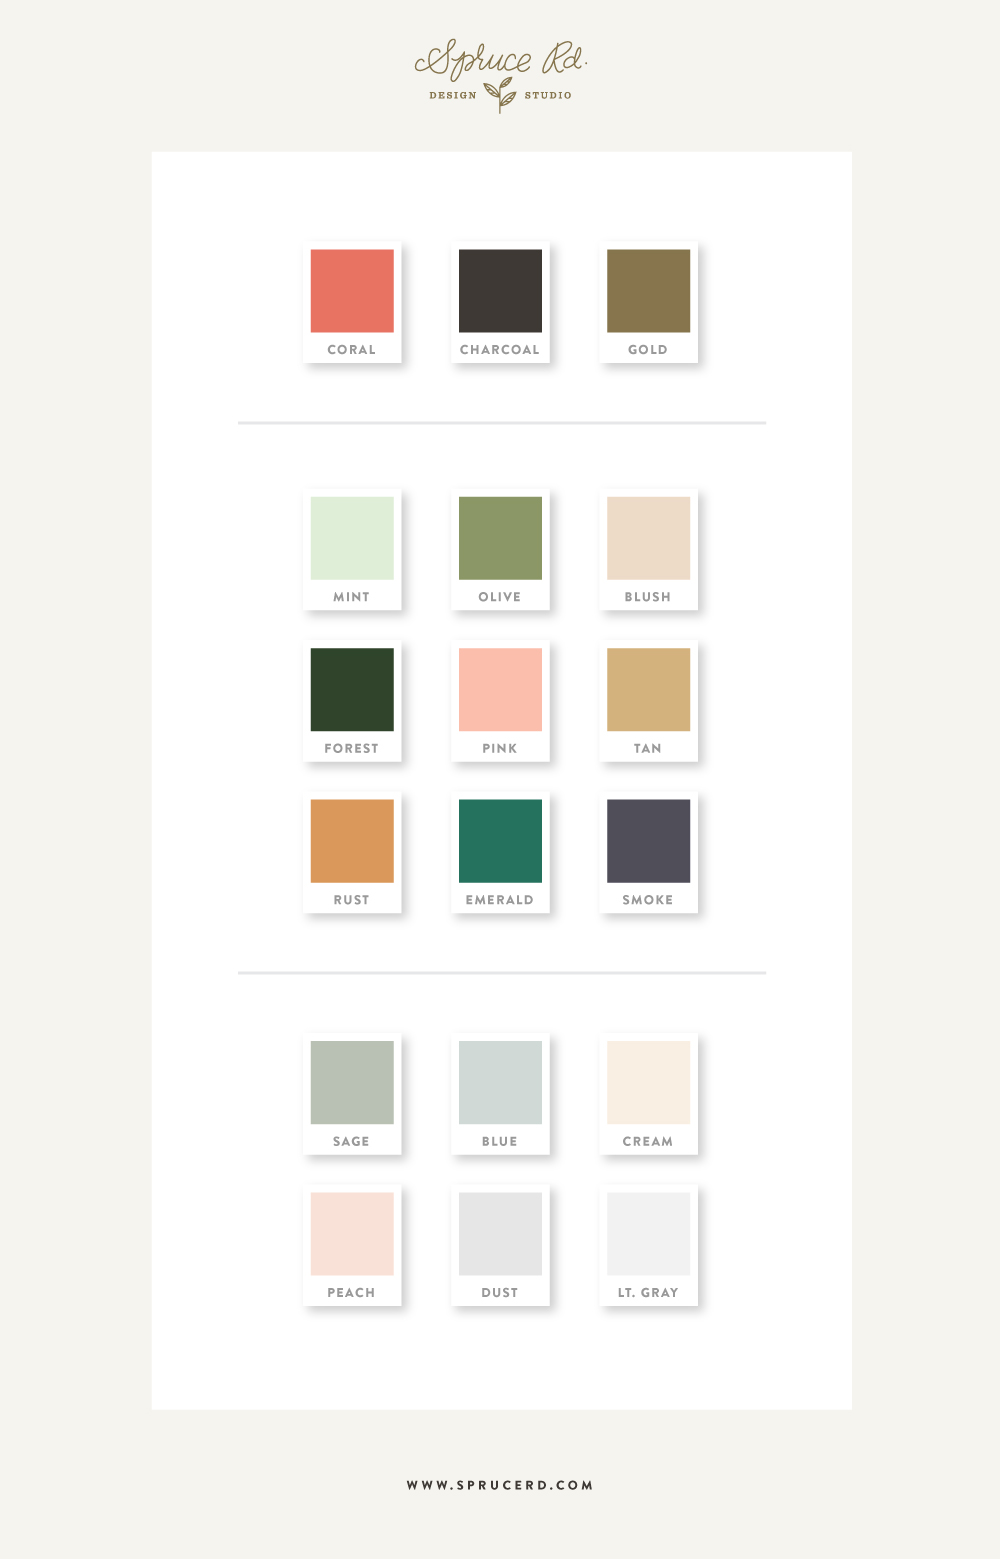 Spruce Rd. Color Palette | #color #inspiration